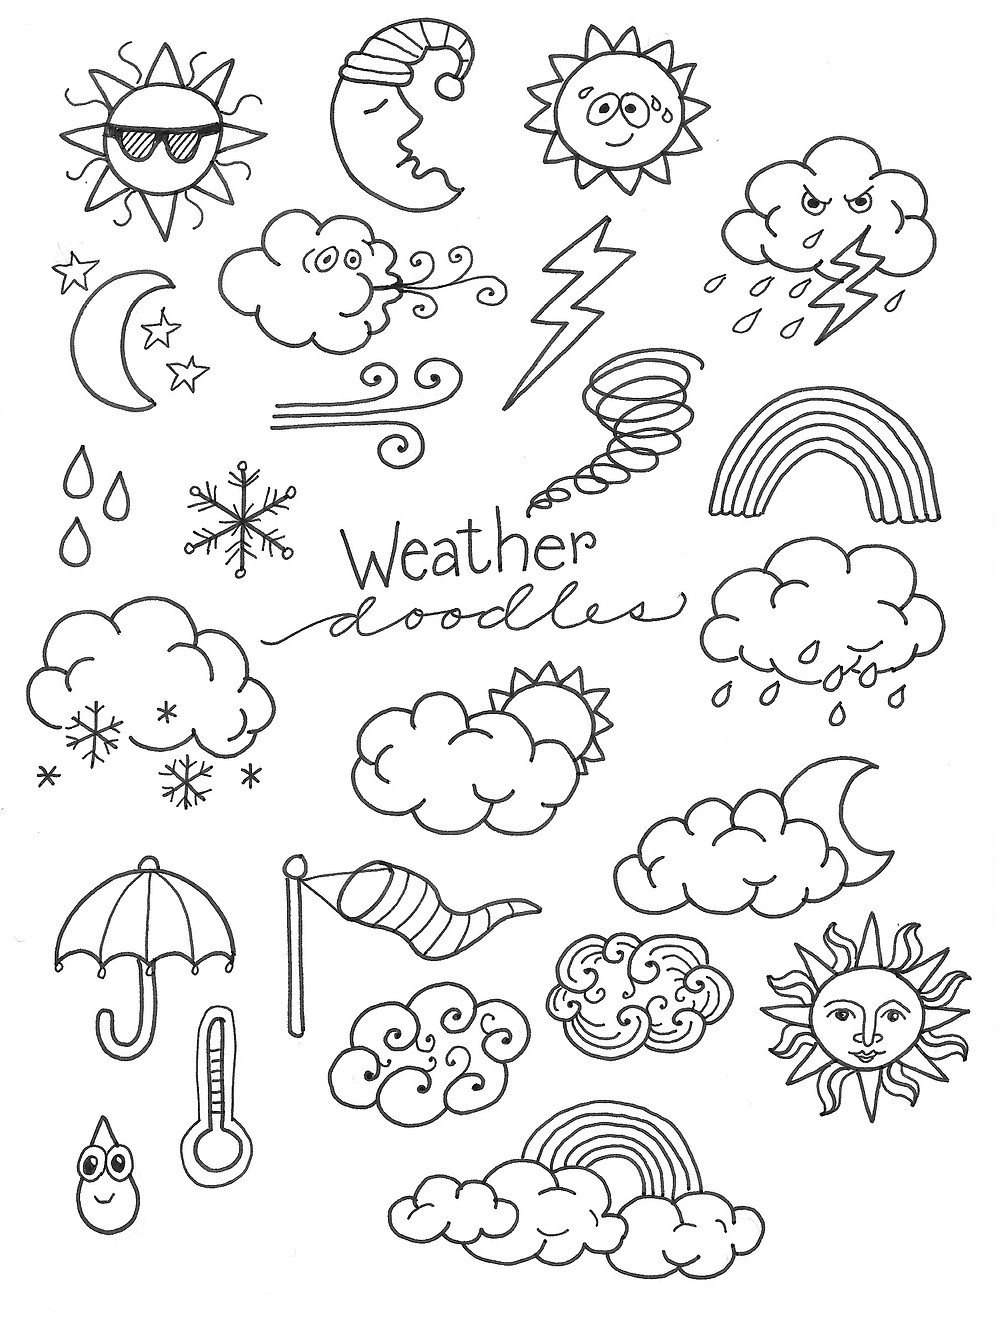 @mariebcreates #coloring #doodle black and white doodles to practice coloring